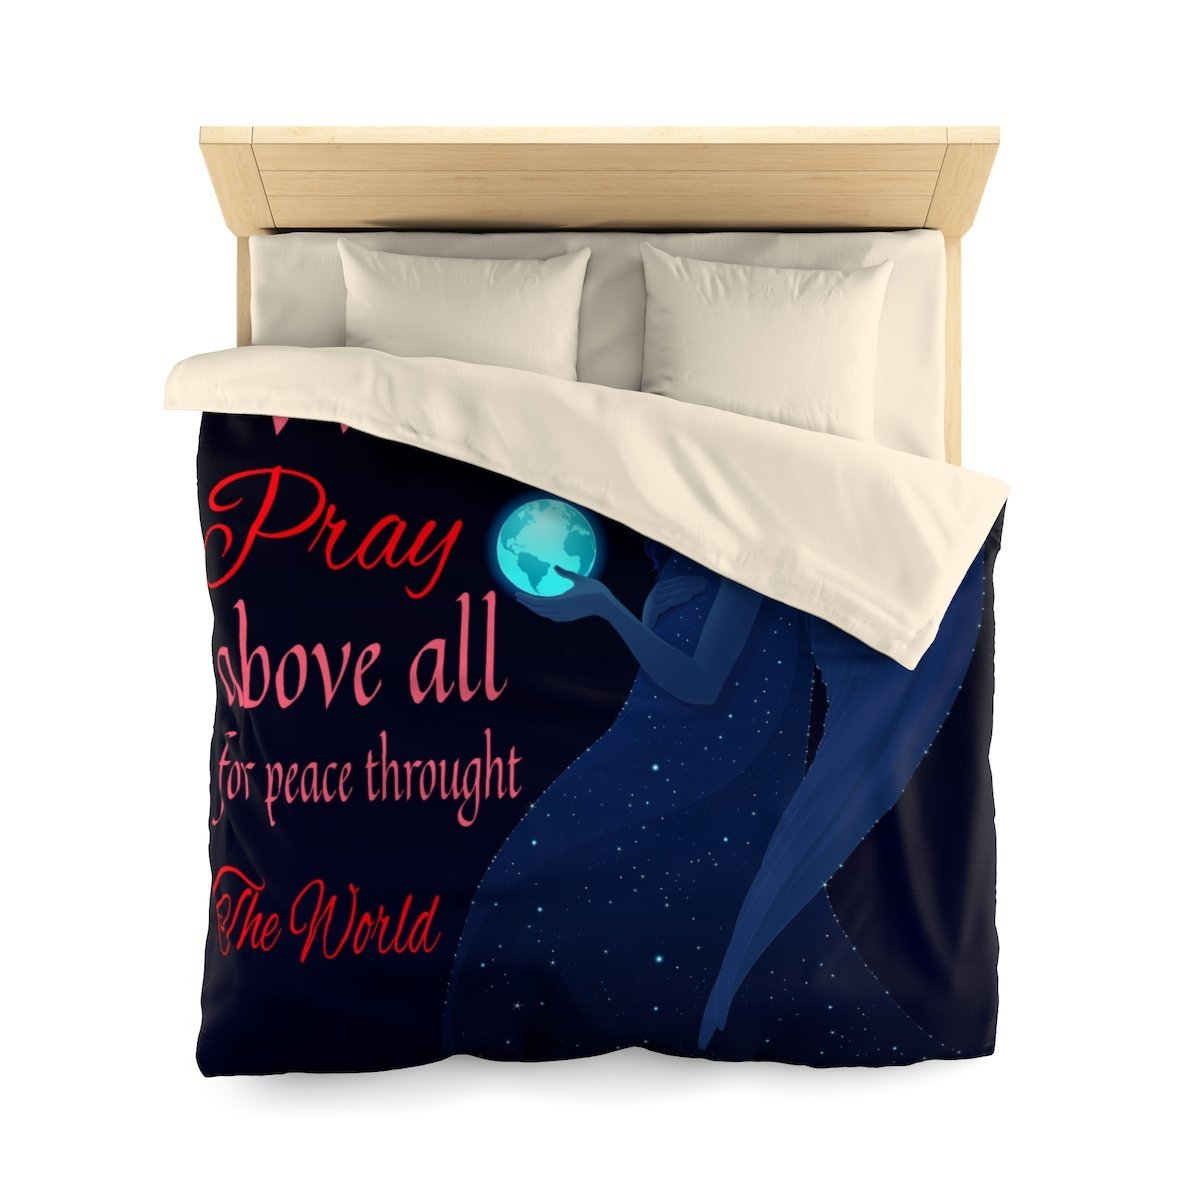 Microfiber Duvet Cover - We Pray Above All For Peace